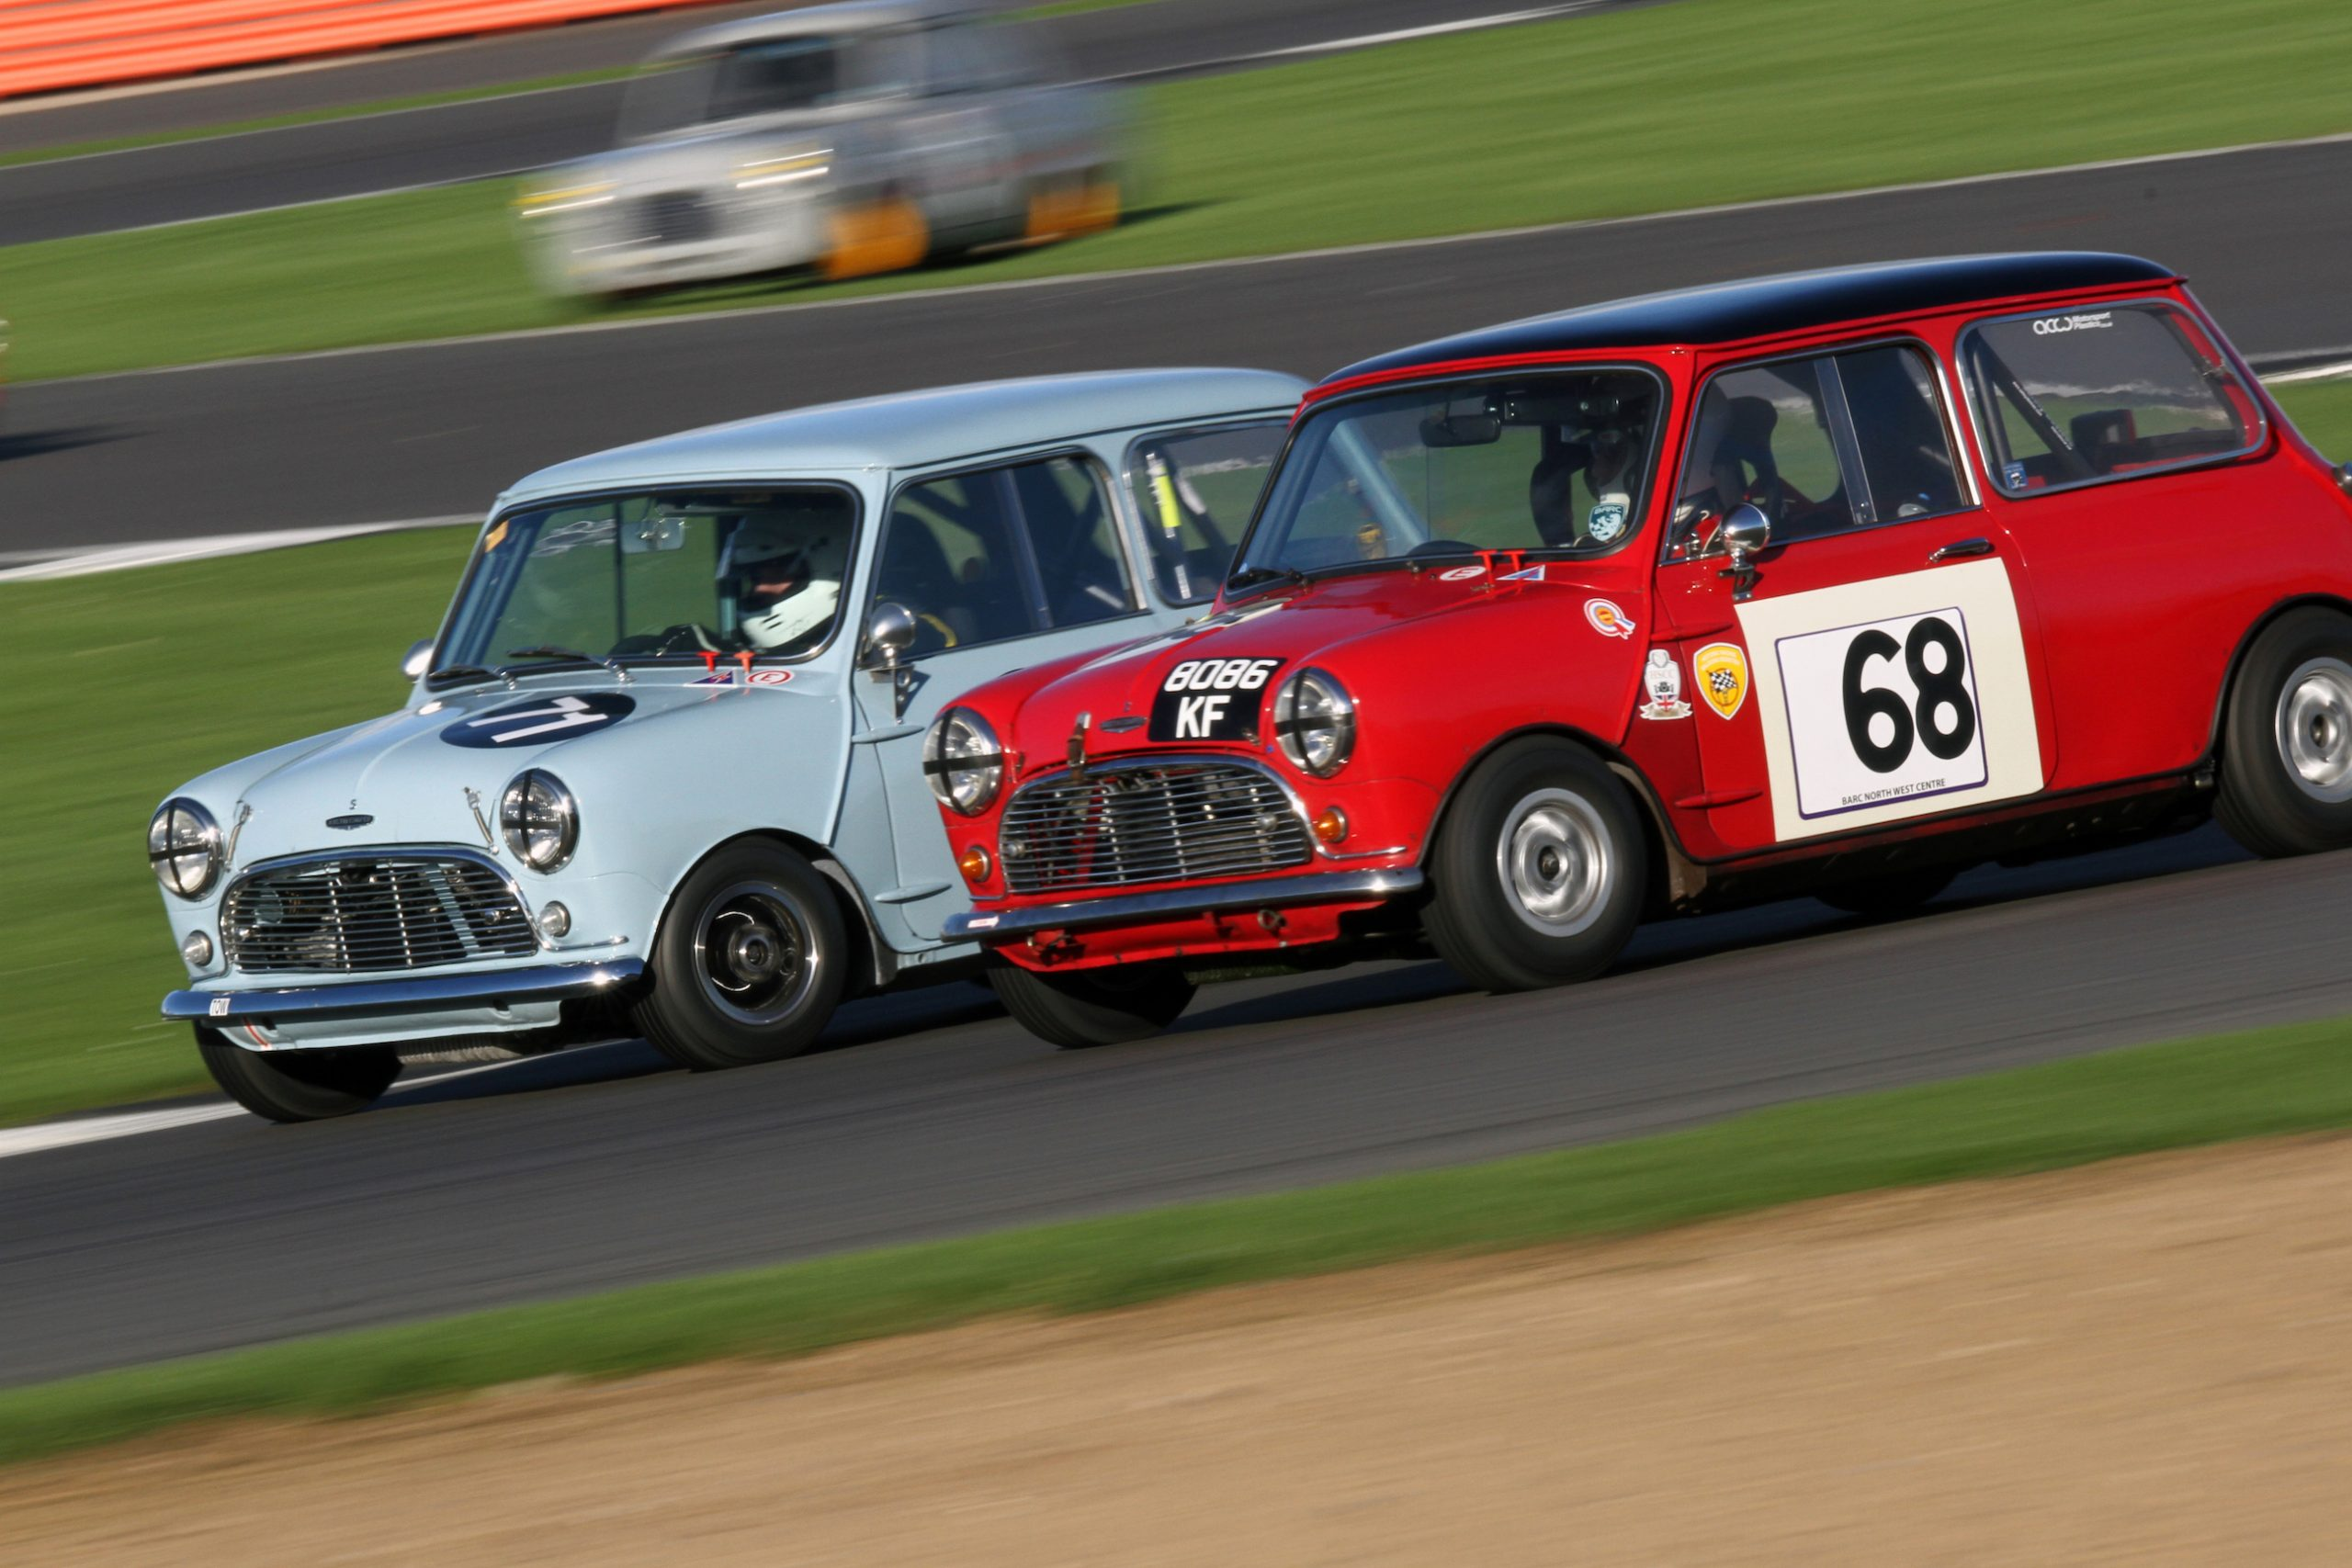 Historic racing features at the annual HSCC Silverstone Finals event